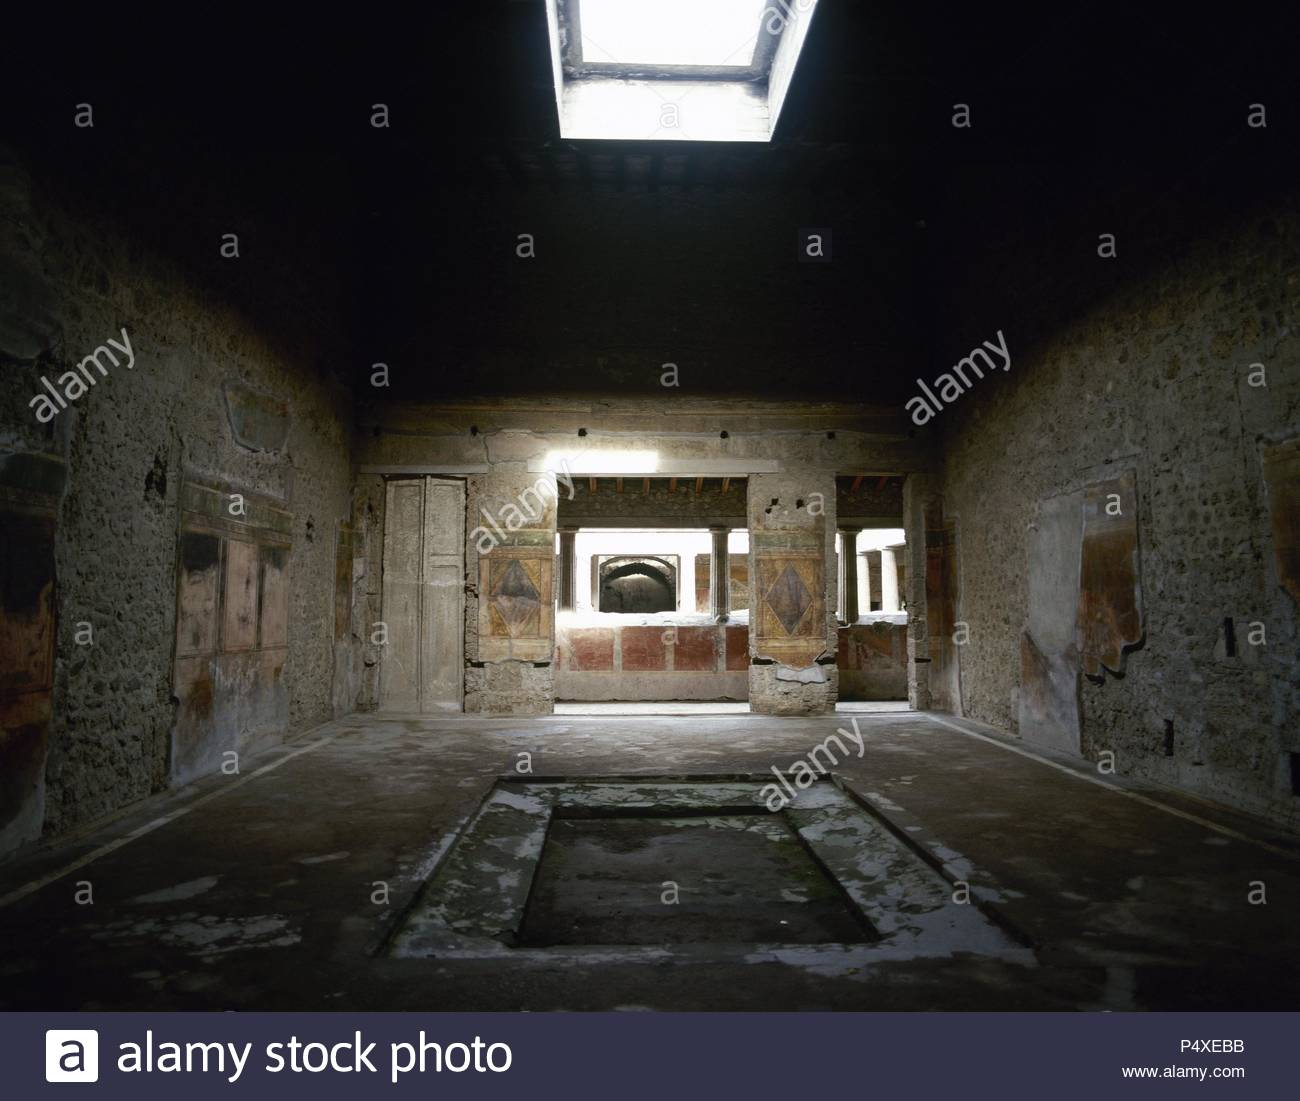 Pompeii. Ancient Roman city. Villa of the Mysteries. View of one of its rooms. 2nd century BC. Campania, Italy. - Stock Image